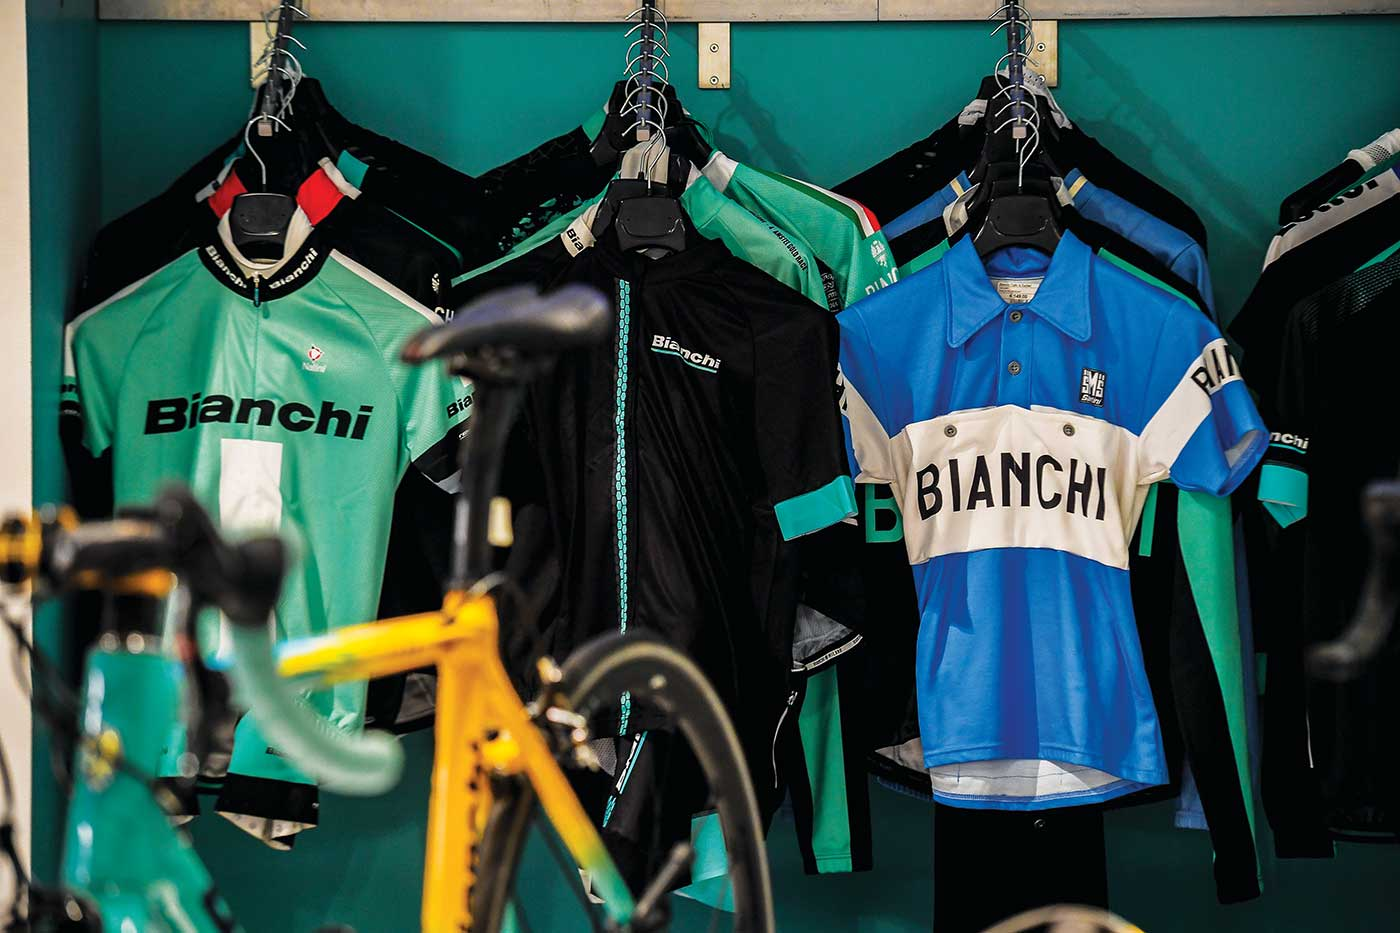 Deus cycleworks caf and bianchi bike store milano for Shop milano